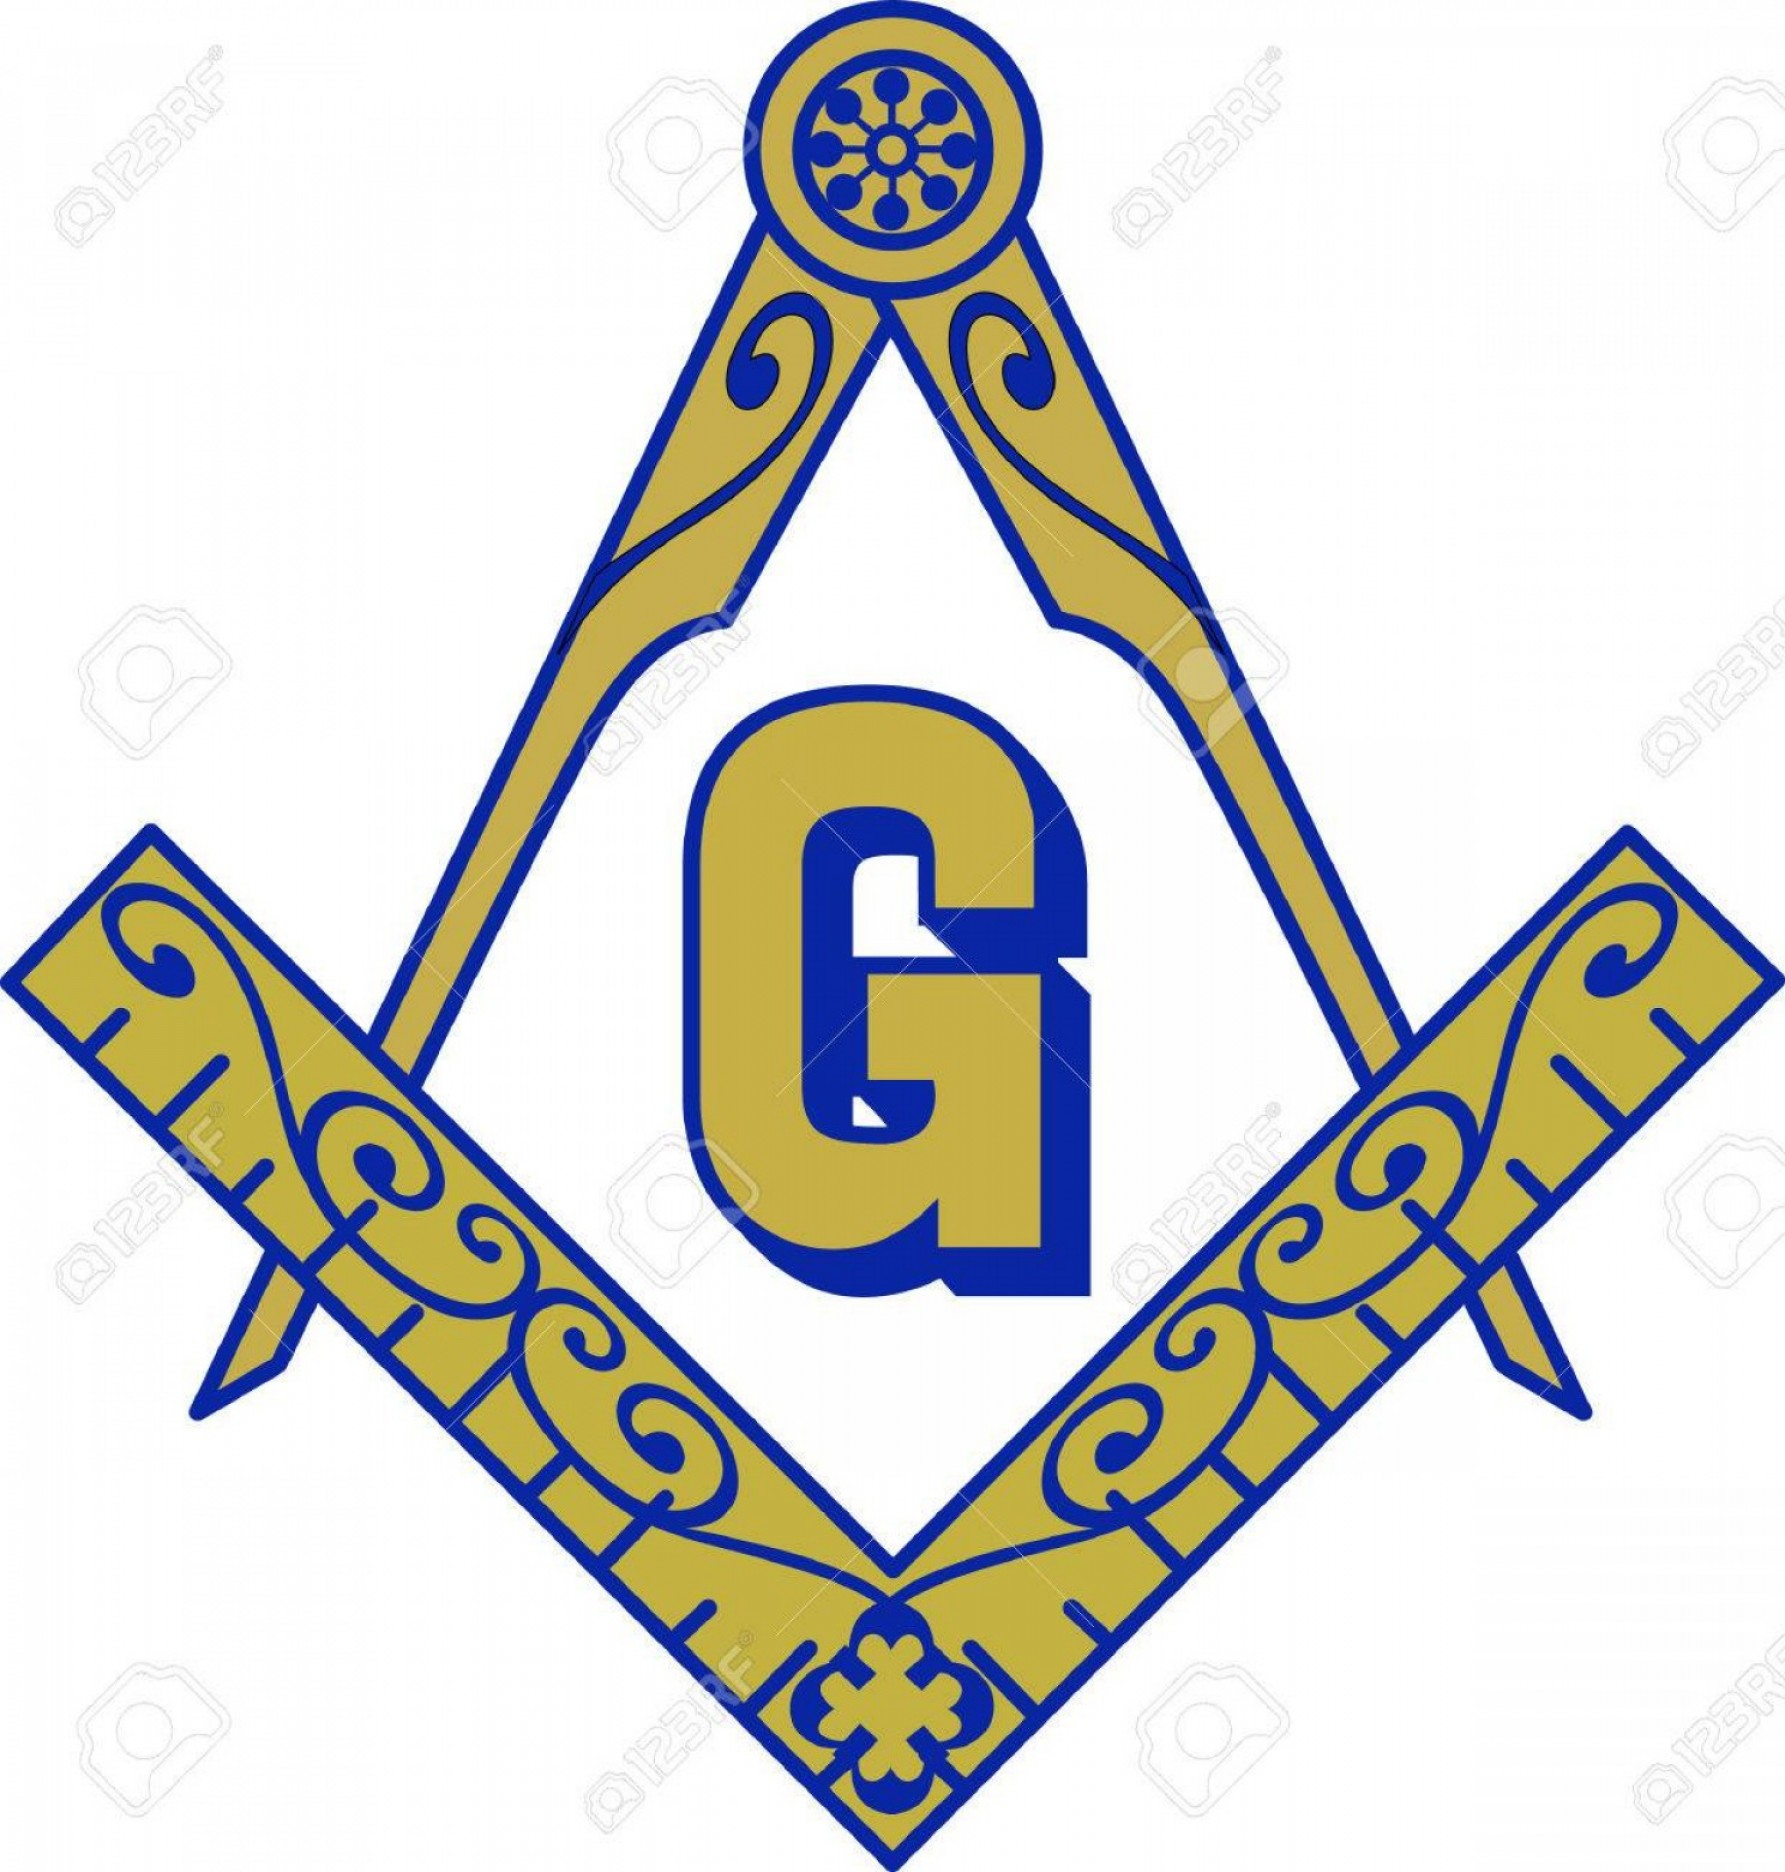 Masonic Past Master Symbol Vector: Photostock Vector The Symbol Represents Freemasonry It Stands For Faith Hope And Charity Add This Design To A Gift To